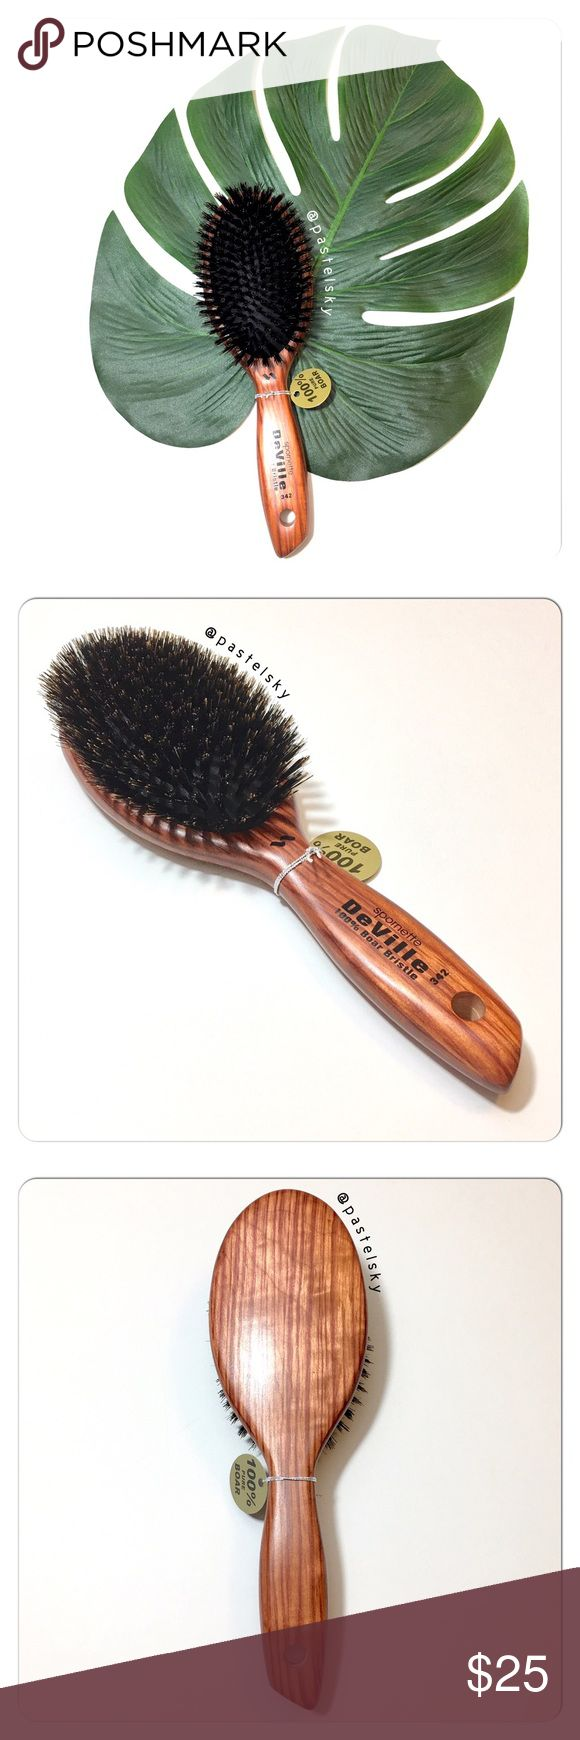 🆕 Spornett DeVille 100% boar bristle hair brush NEW, never used and in excellent condition.   Boar bristles help to distribute natural oils through the hair. Great for scalp and hair conditioning.  details ・style #342 ・100% boar bristles   due to lighting- color of actual item may vary slightly from photos.  please don't hesitate to ask questions. happy POSHing 😊  💰 use offer feature to negotiate price 🚫 i do not trade or take any transactions off poshmark Spornett DeVille Accessories…